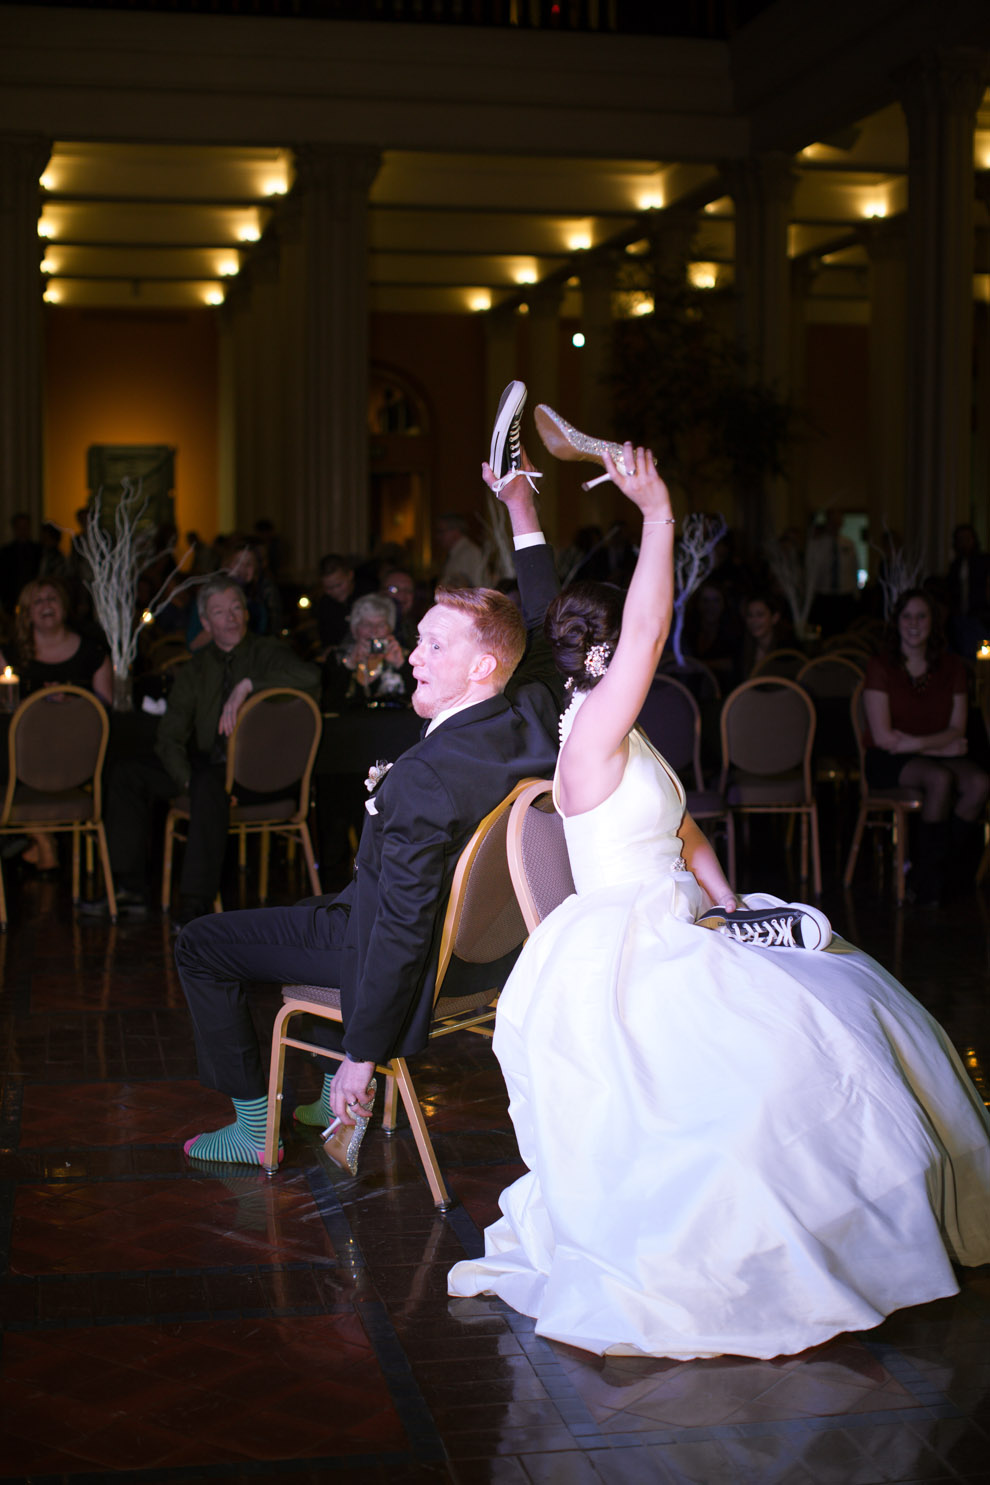 011114_Olmscheid_Wedding_3542